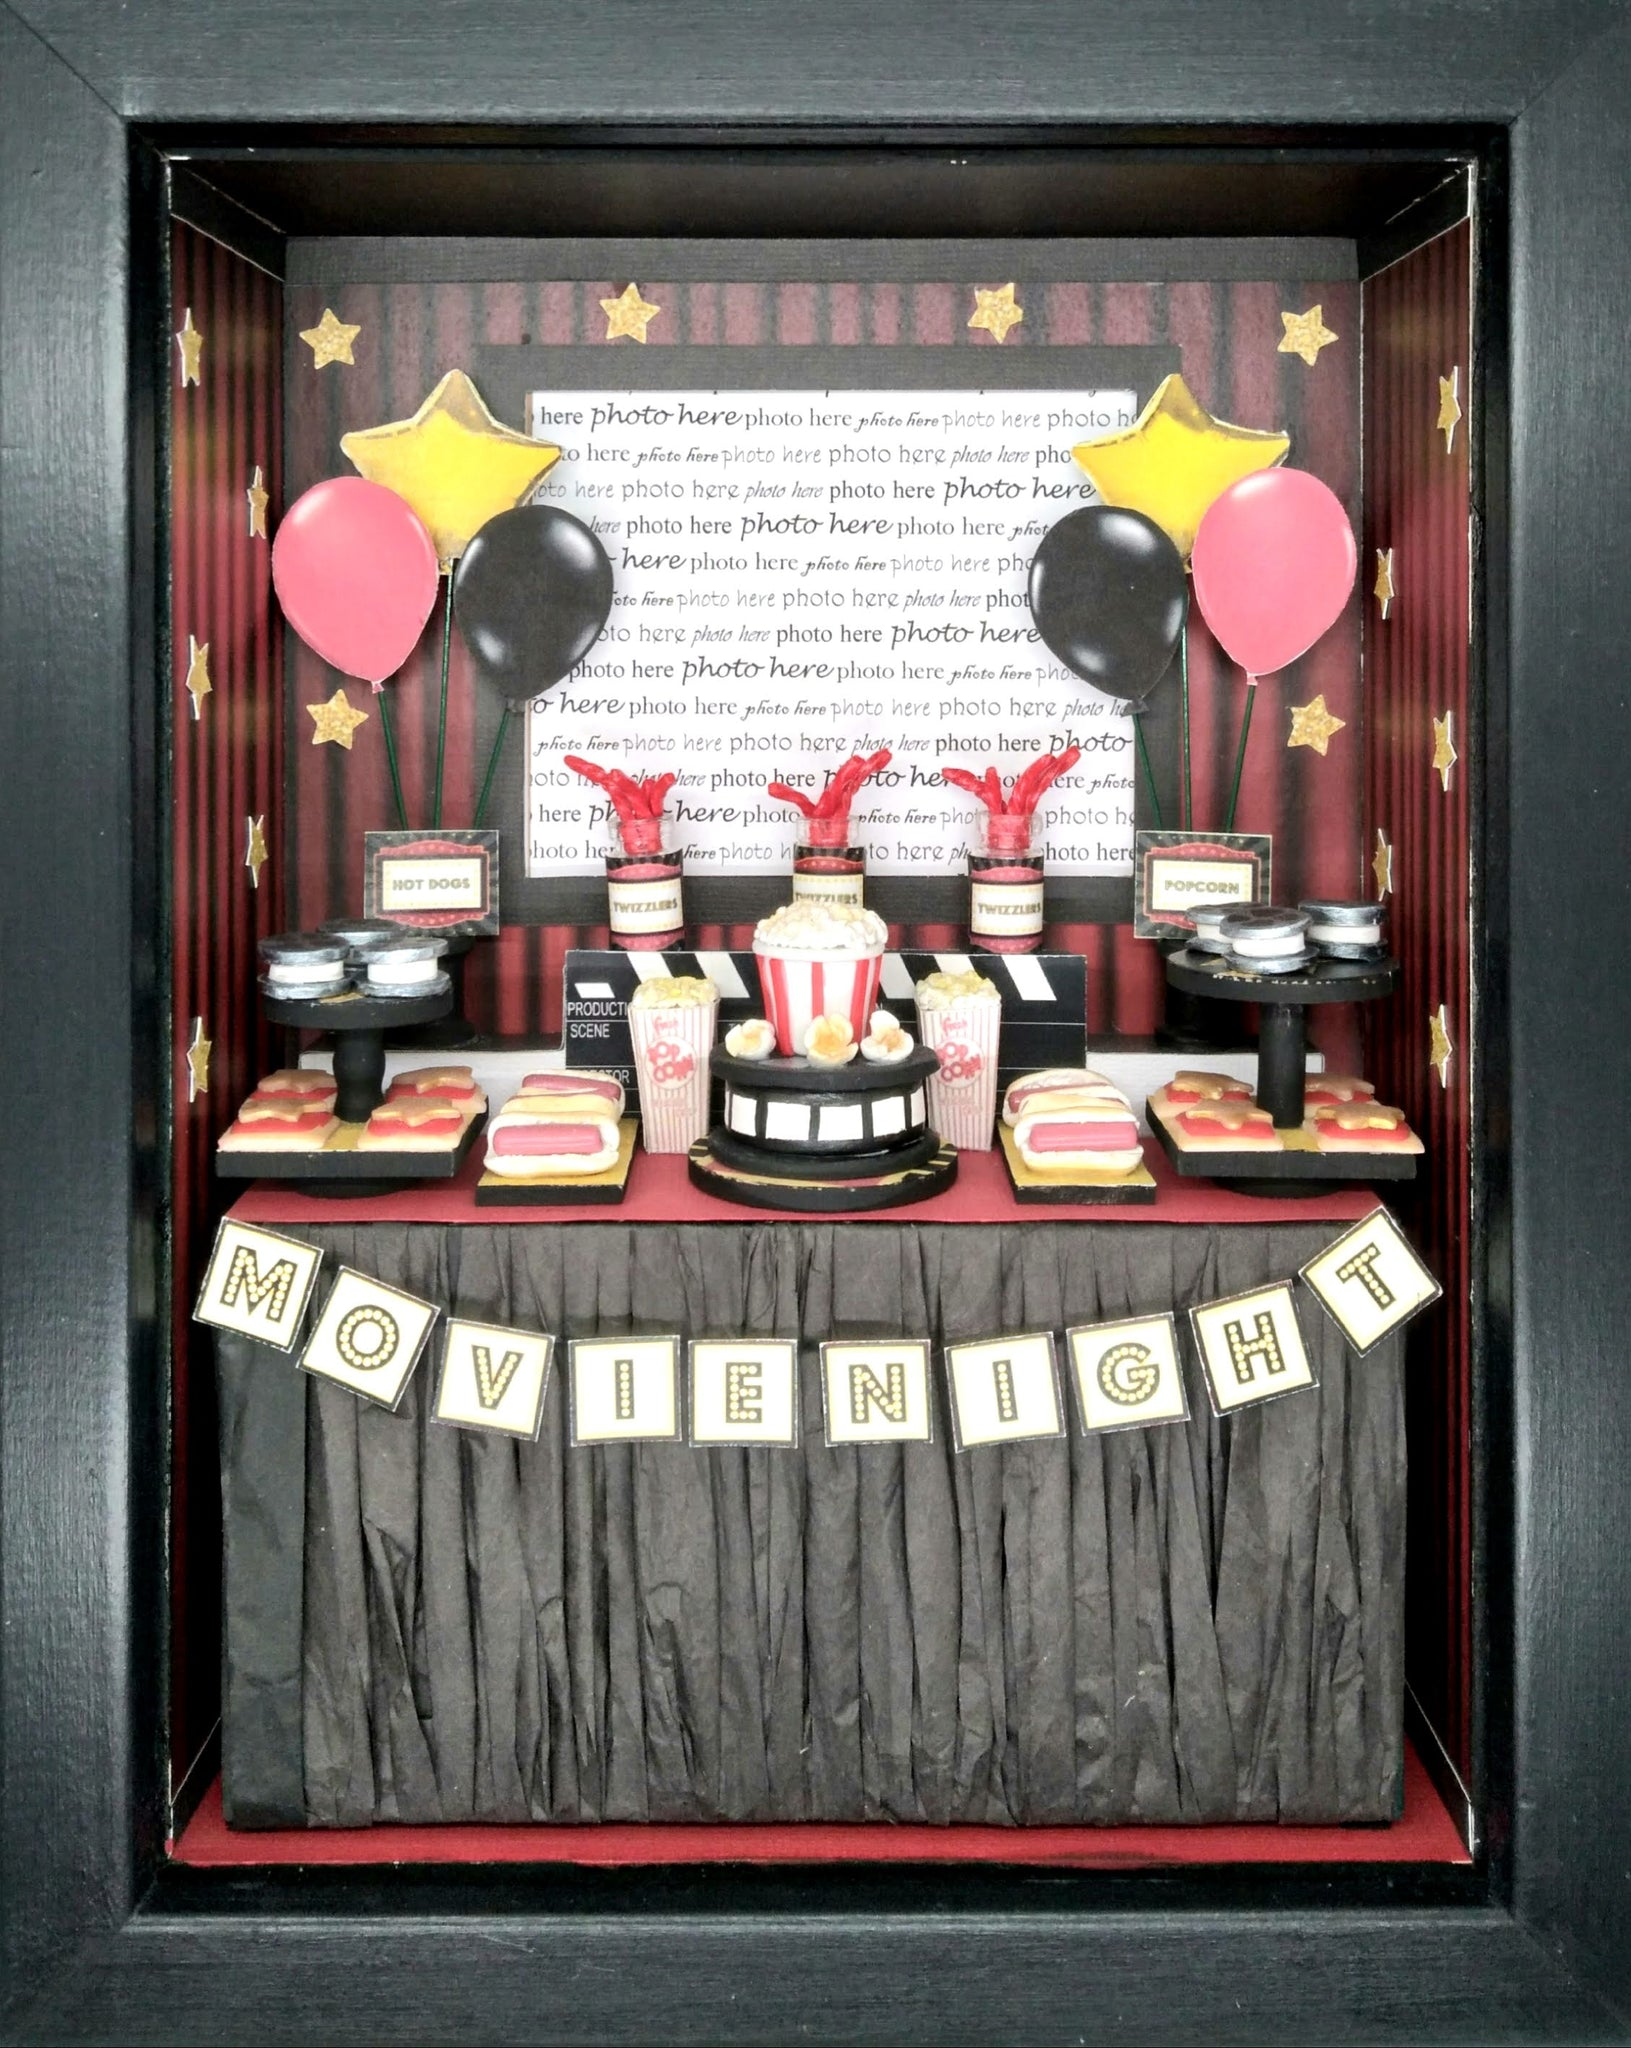 Shadowbox Photo Frame - Movie Night